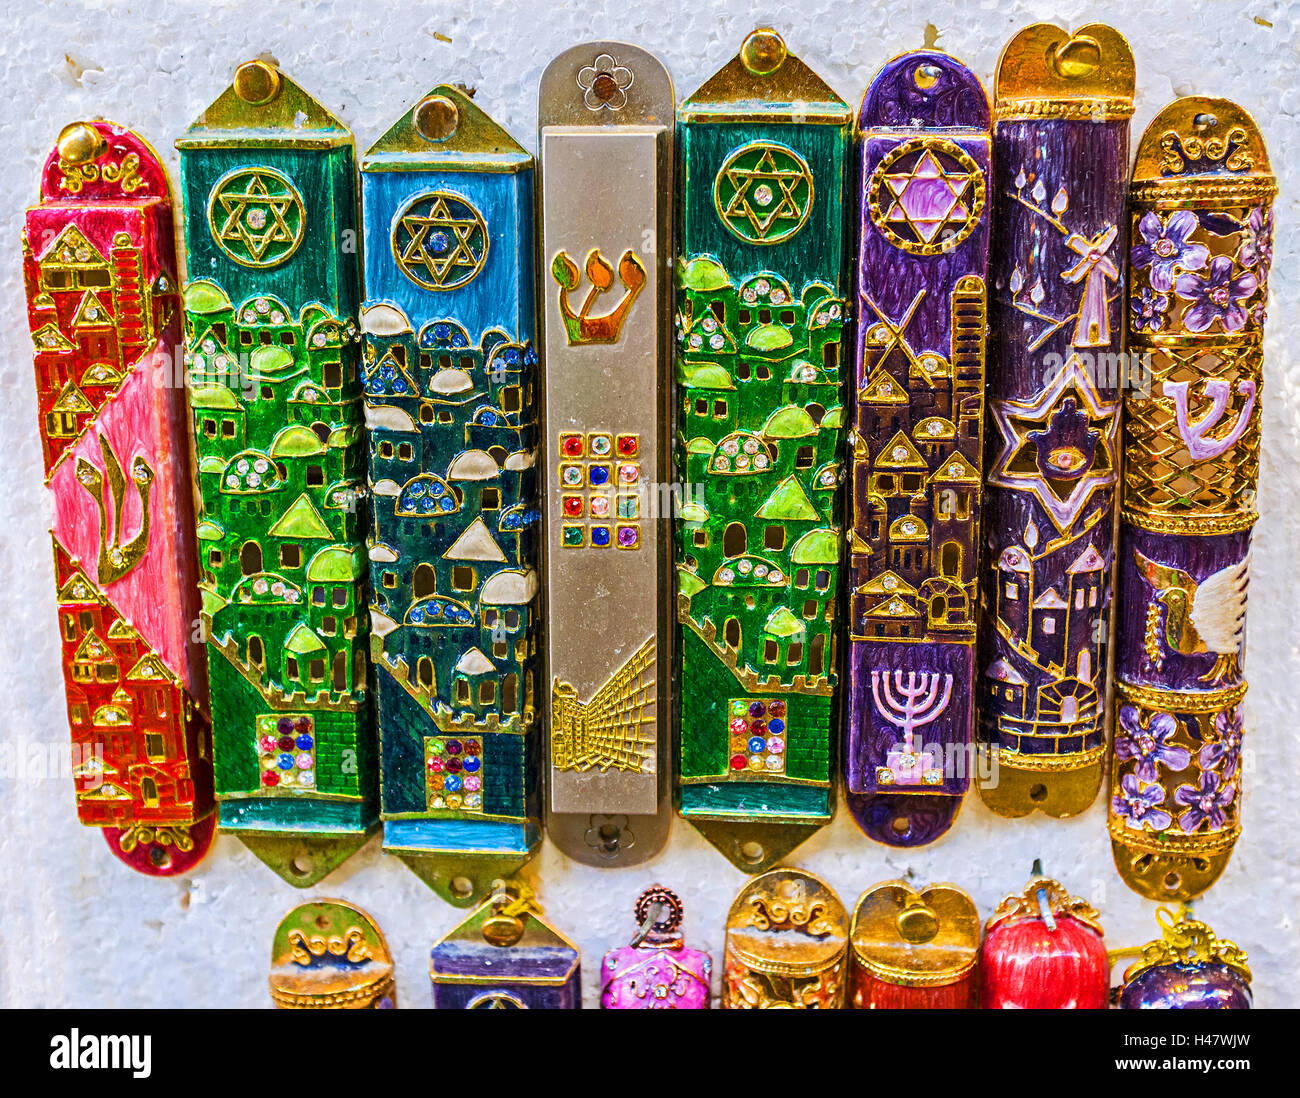 The Mezuzah Is Affixed To The Doorframe Of Homes In Jewish